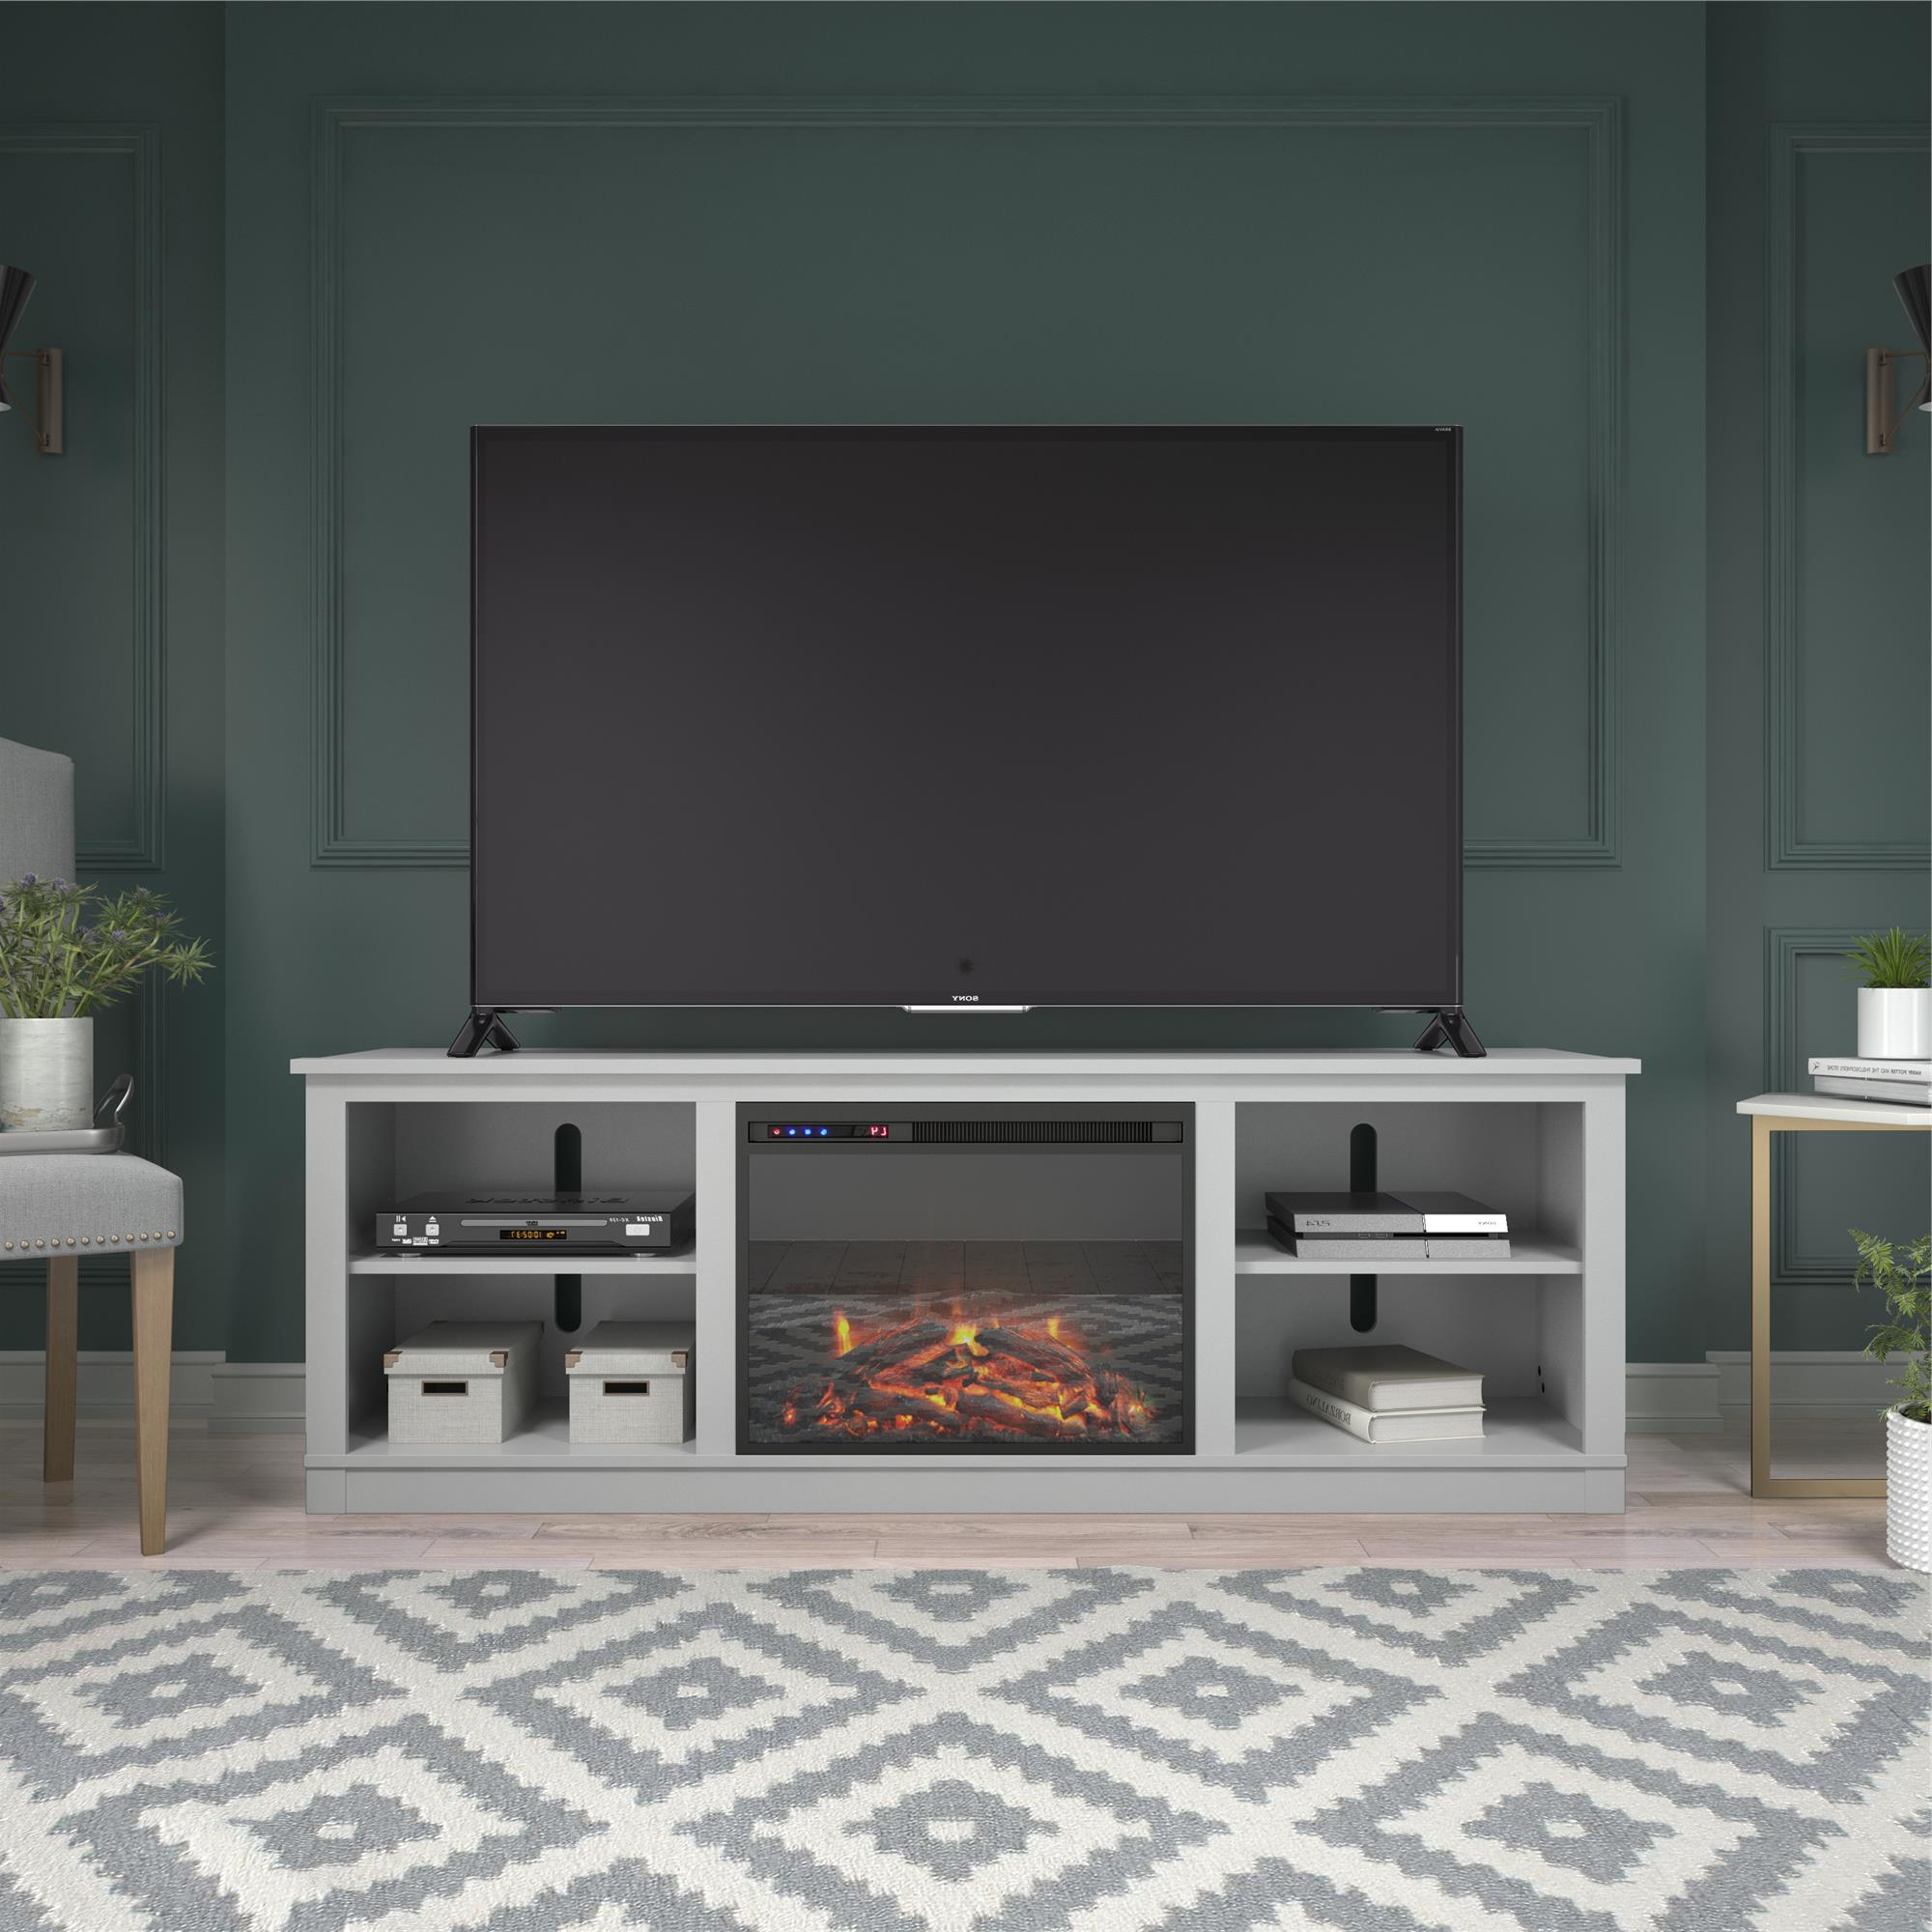 """Ameriwood Home Kahle Fireplace Tv Stand For Tvs Up To 75 Intended For Mainor Tv Stands For Tvs Up To 70"""" (View 3 of 20)"""